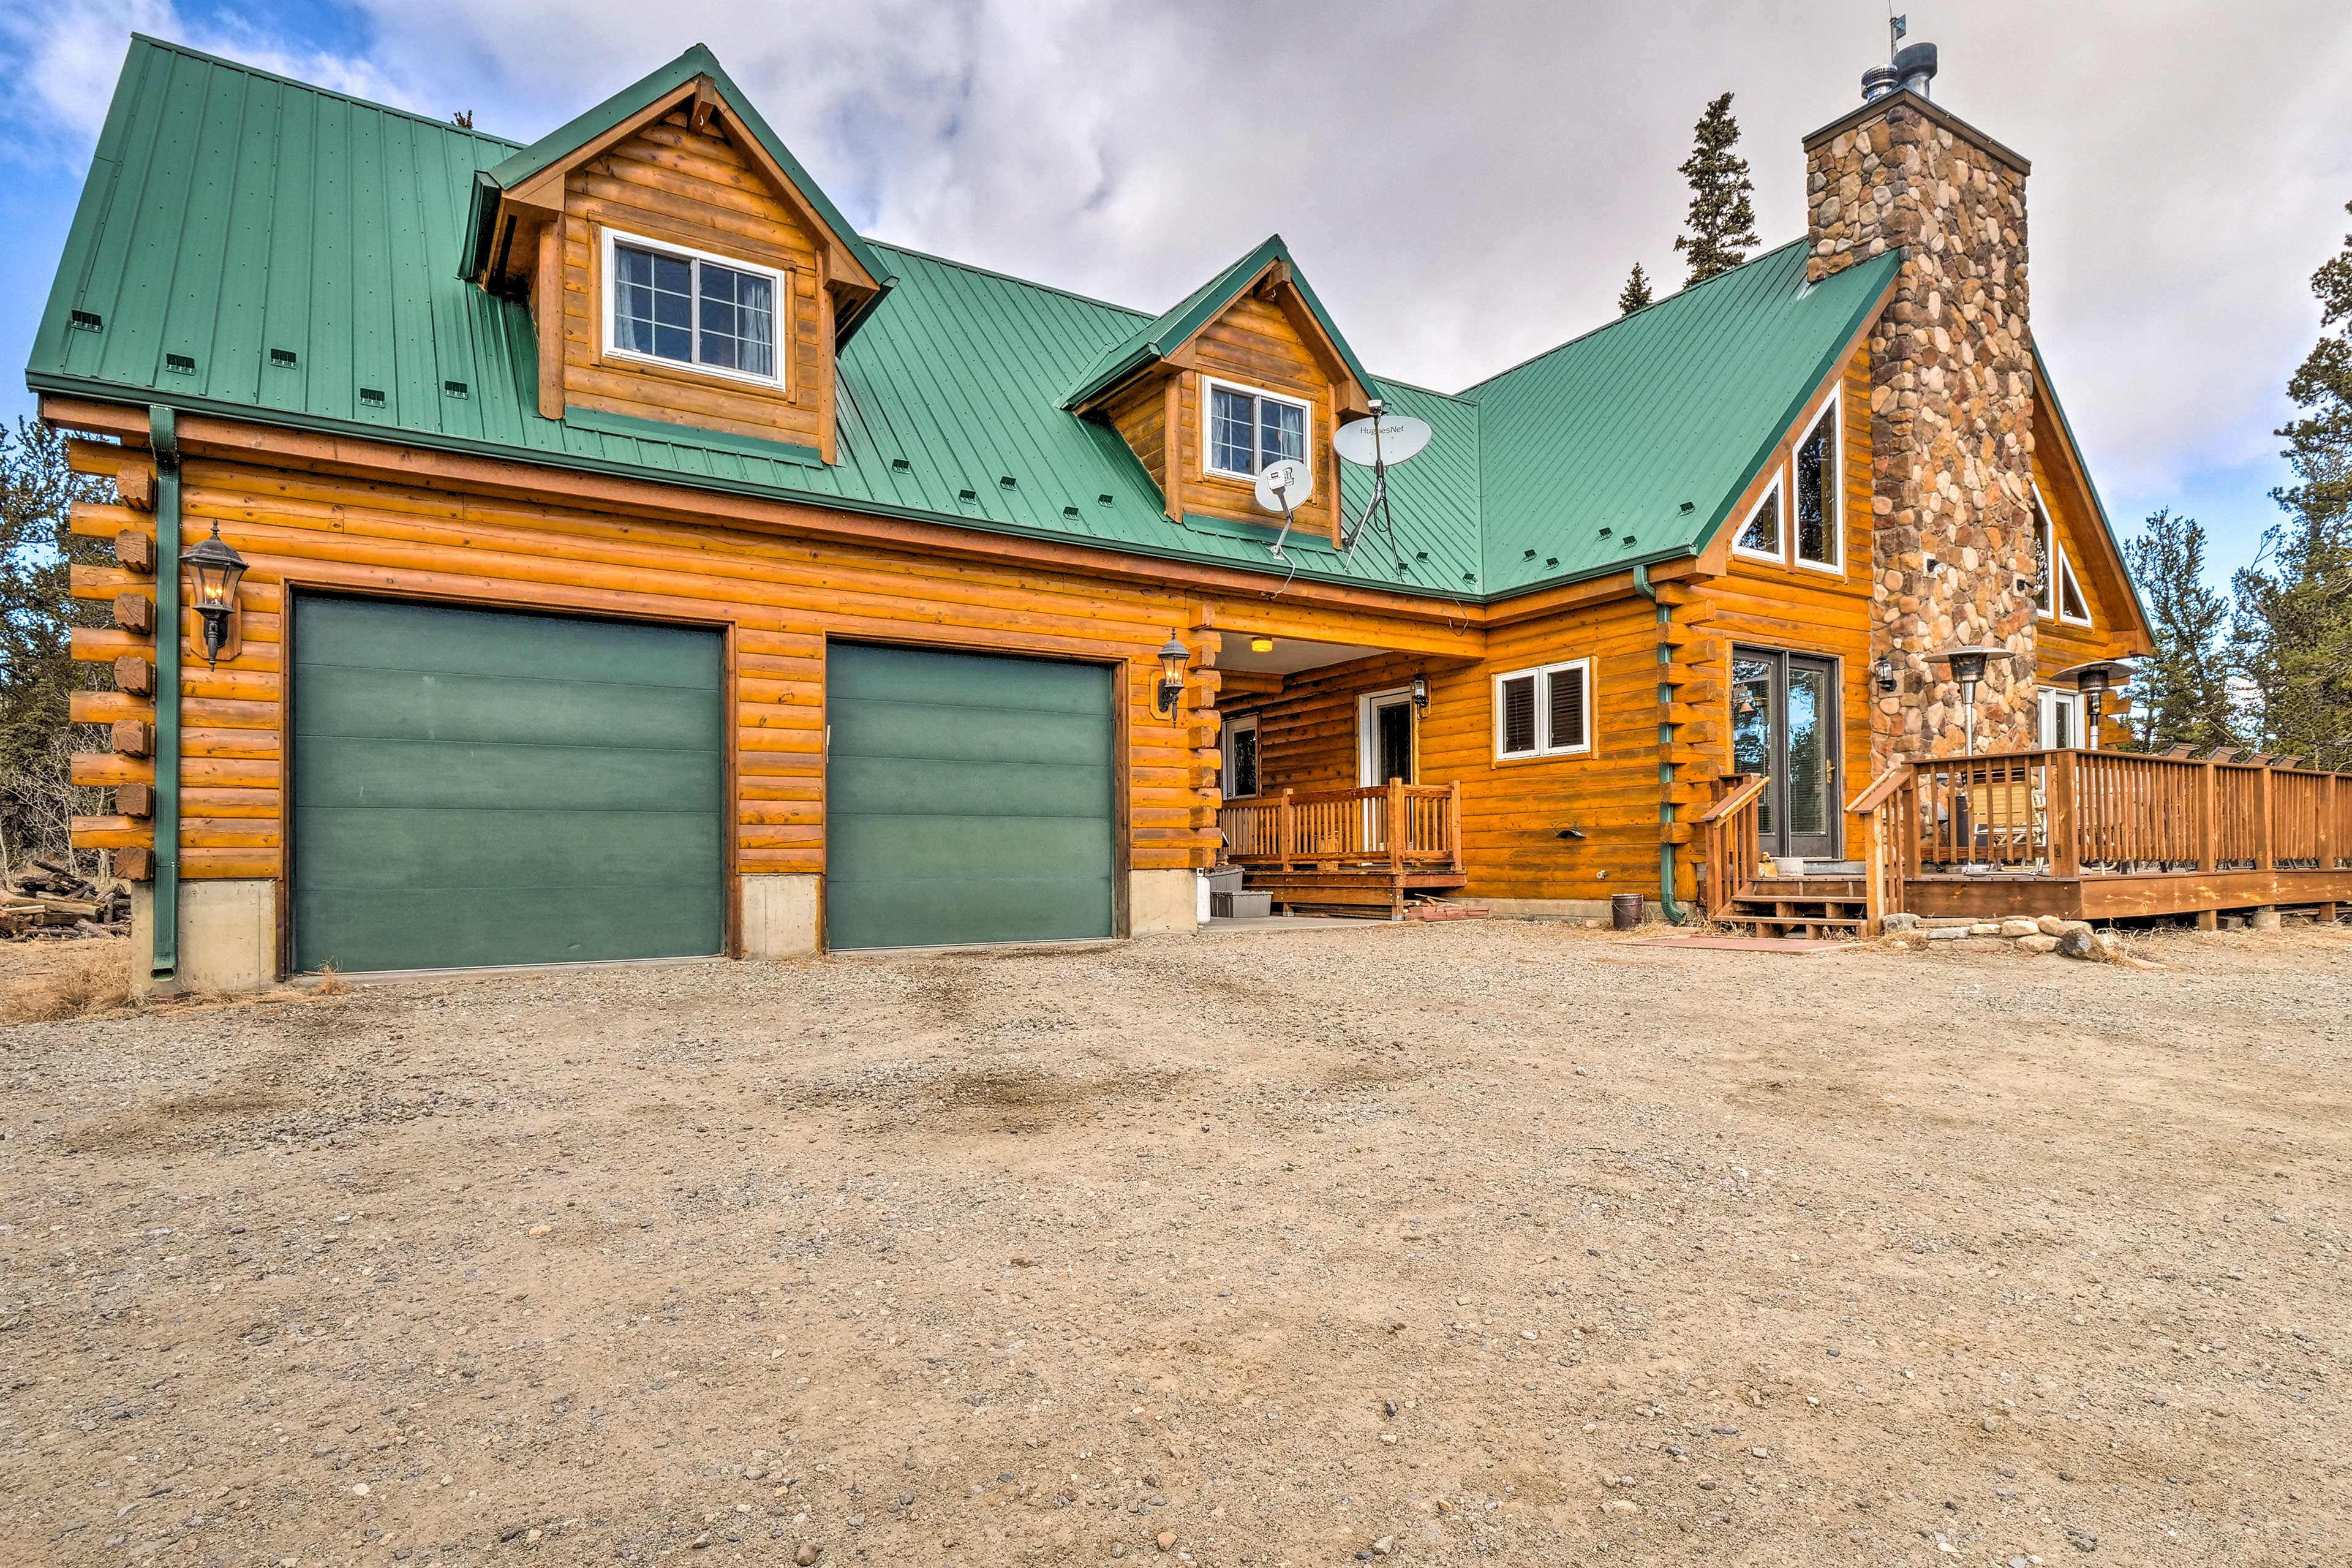 Dive into nature at 'High Creek Hideaway,' a 5-bed, 3-bath vacation rental.